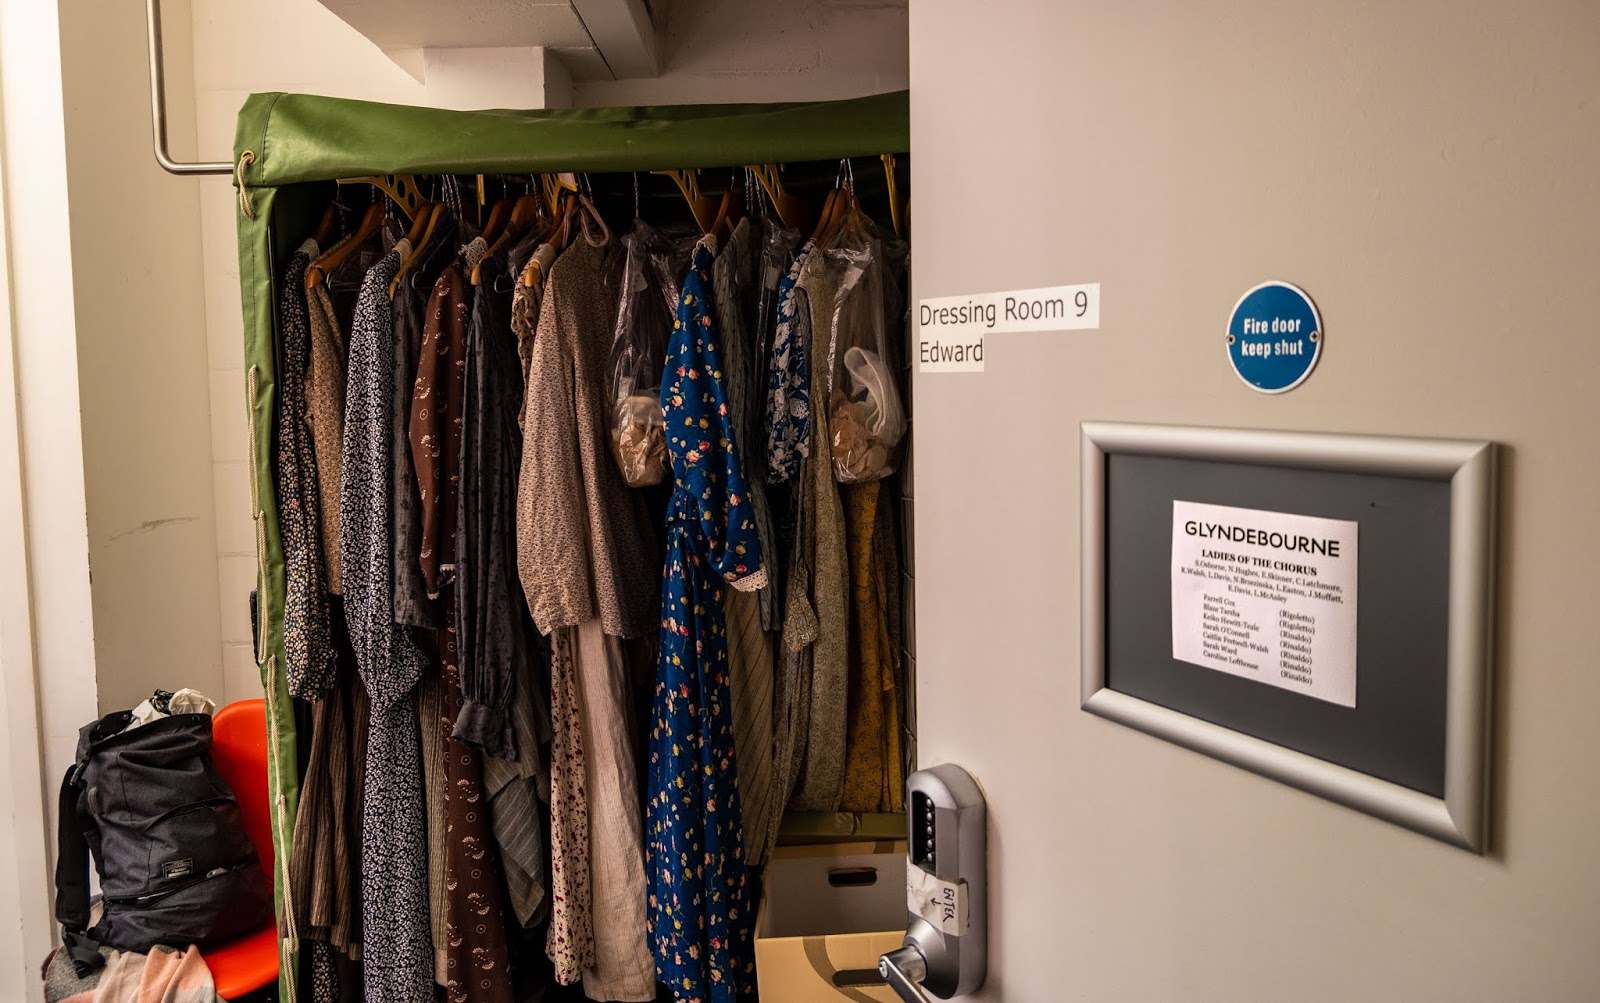 1940s costumes for Glyndebourne's L'elisir d'amore at the Marlowe Theatre, Canterbury